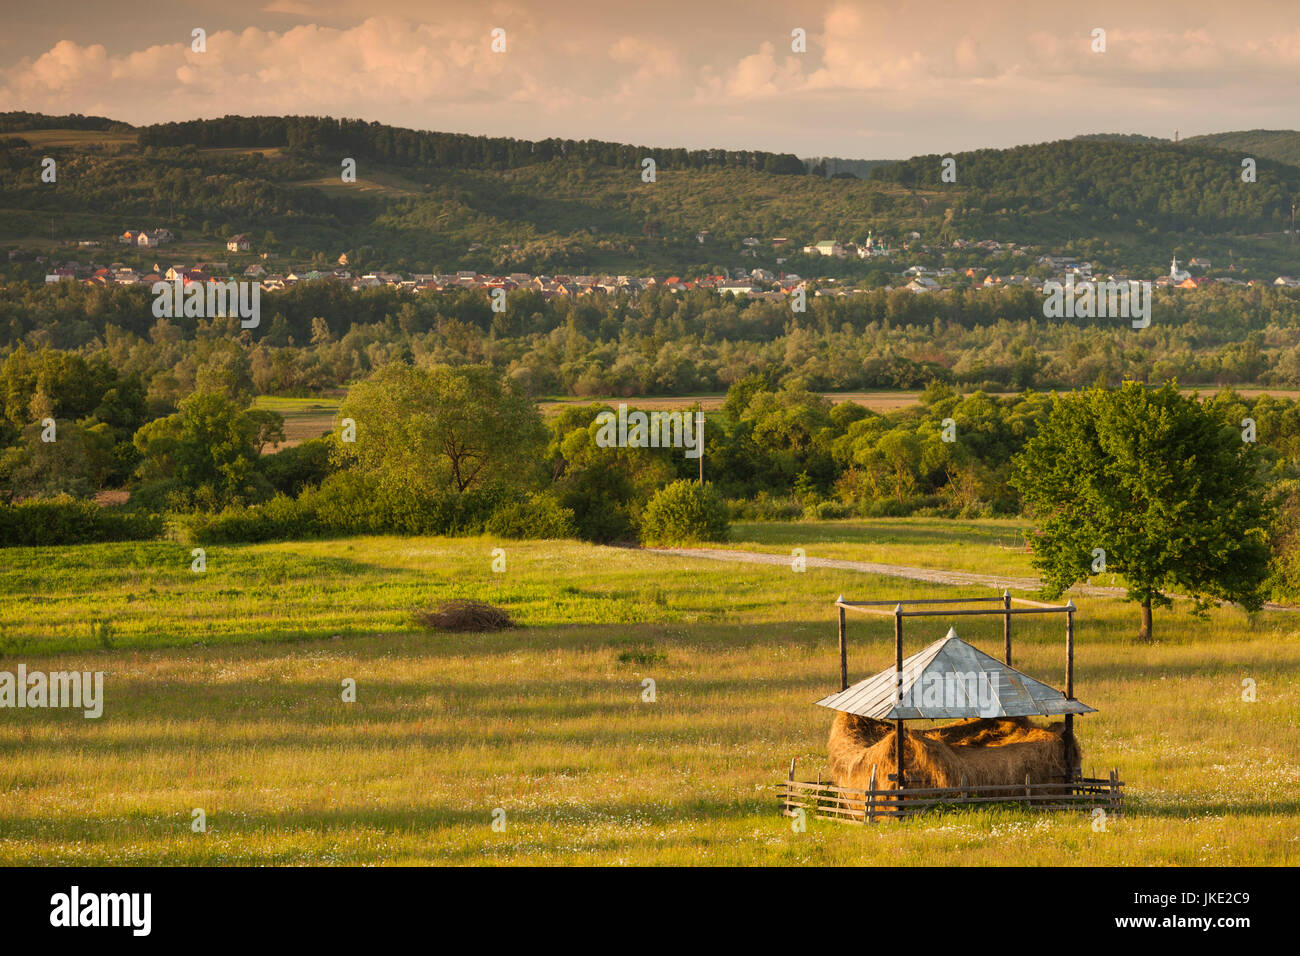 Romania, Maramures Region, Sarasau, haystack by the Ukranian frontier, late afternoon - Stock Image